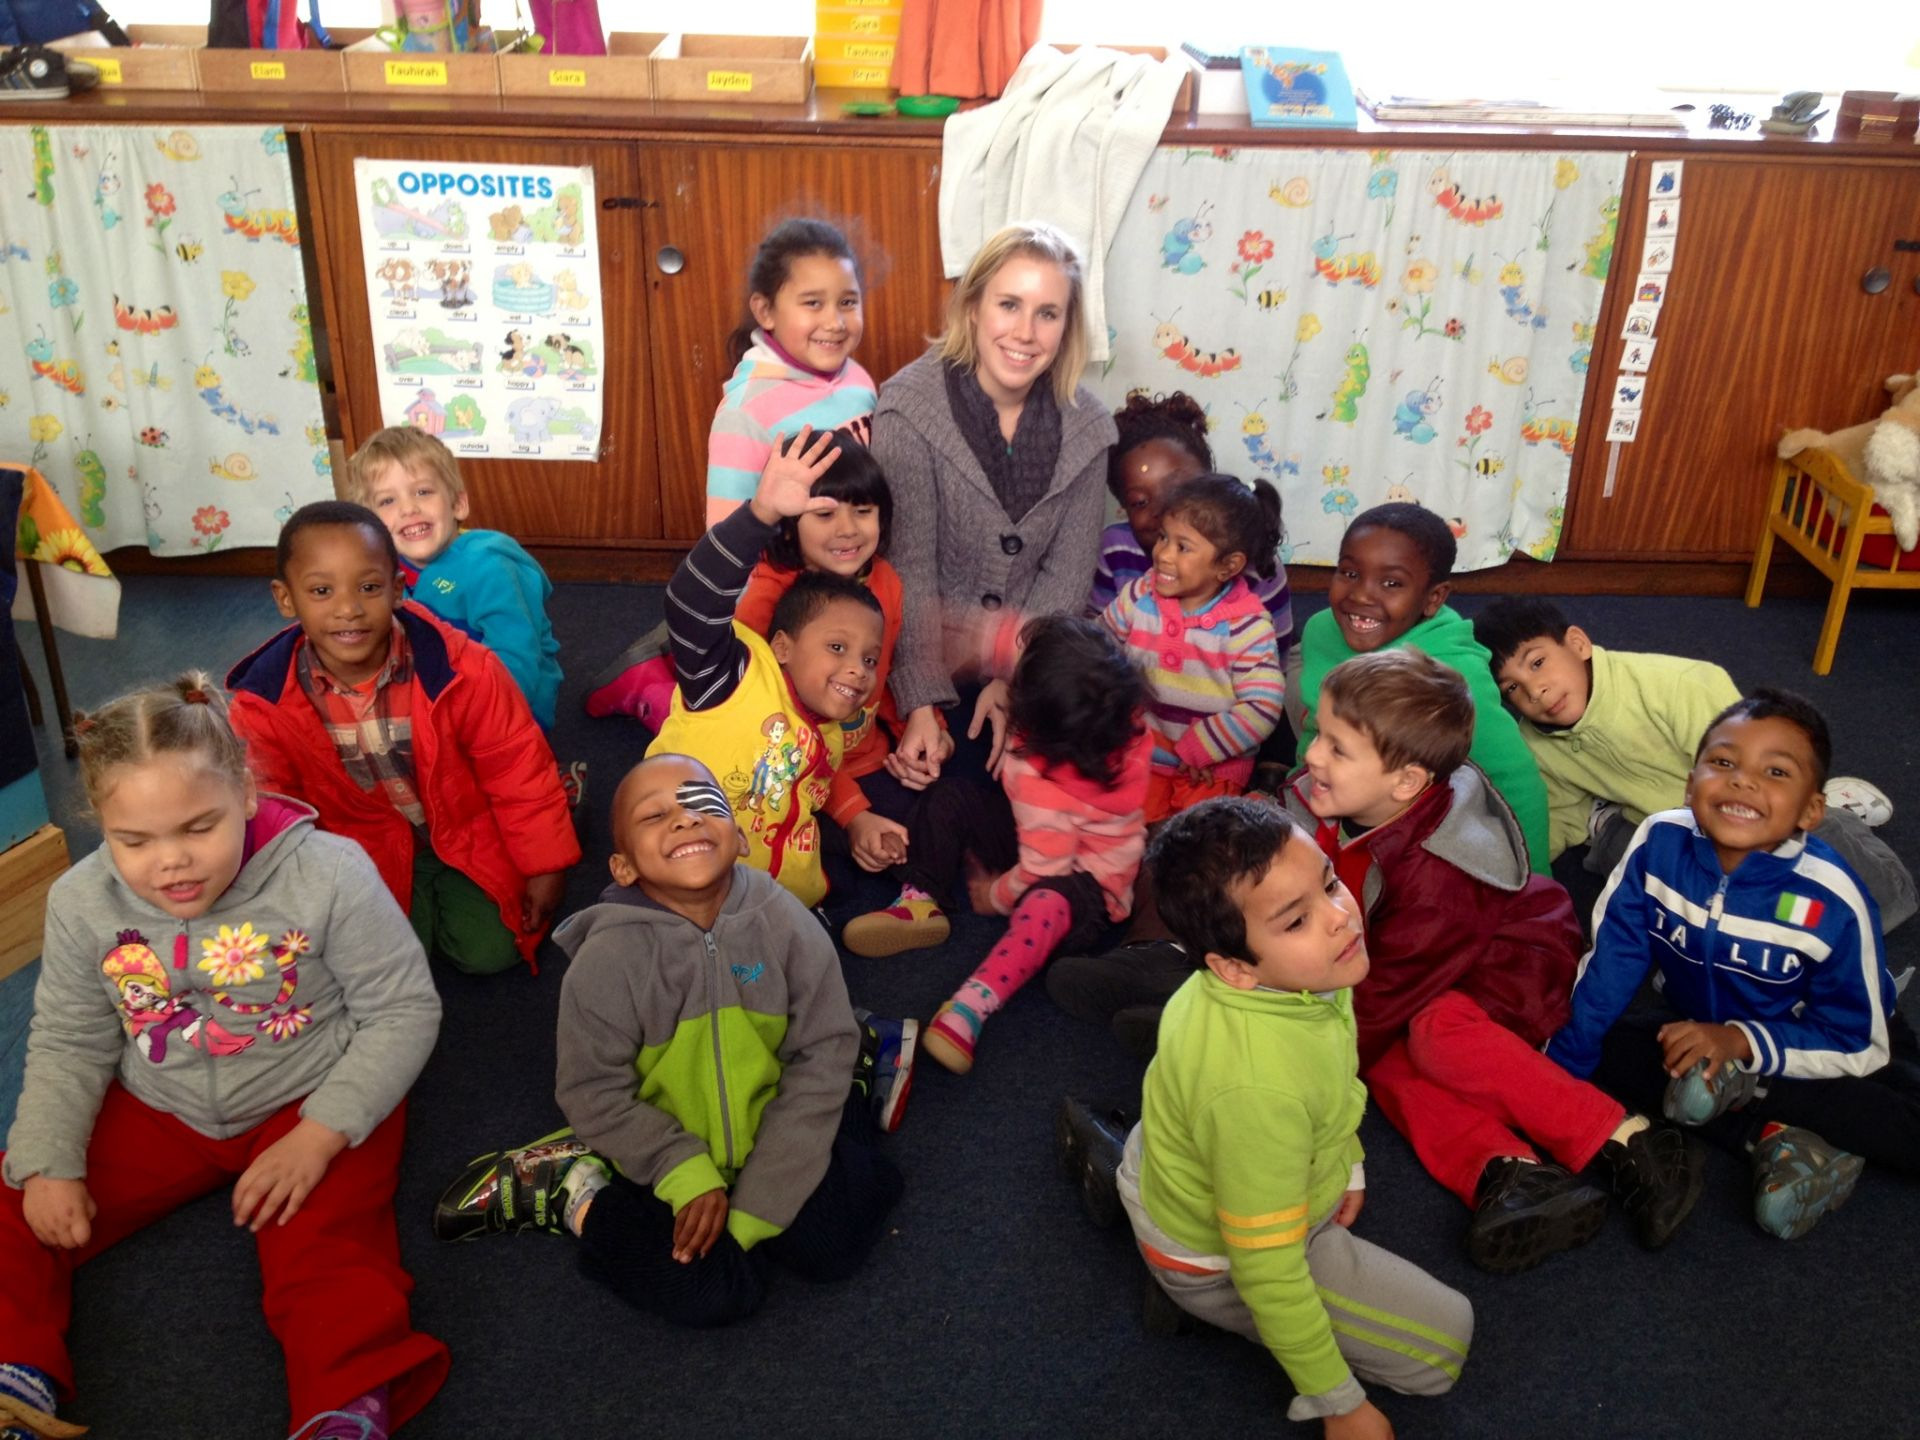 Rachael Drouin '10 is fundraising for a school roof in South Africa